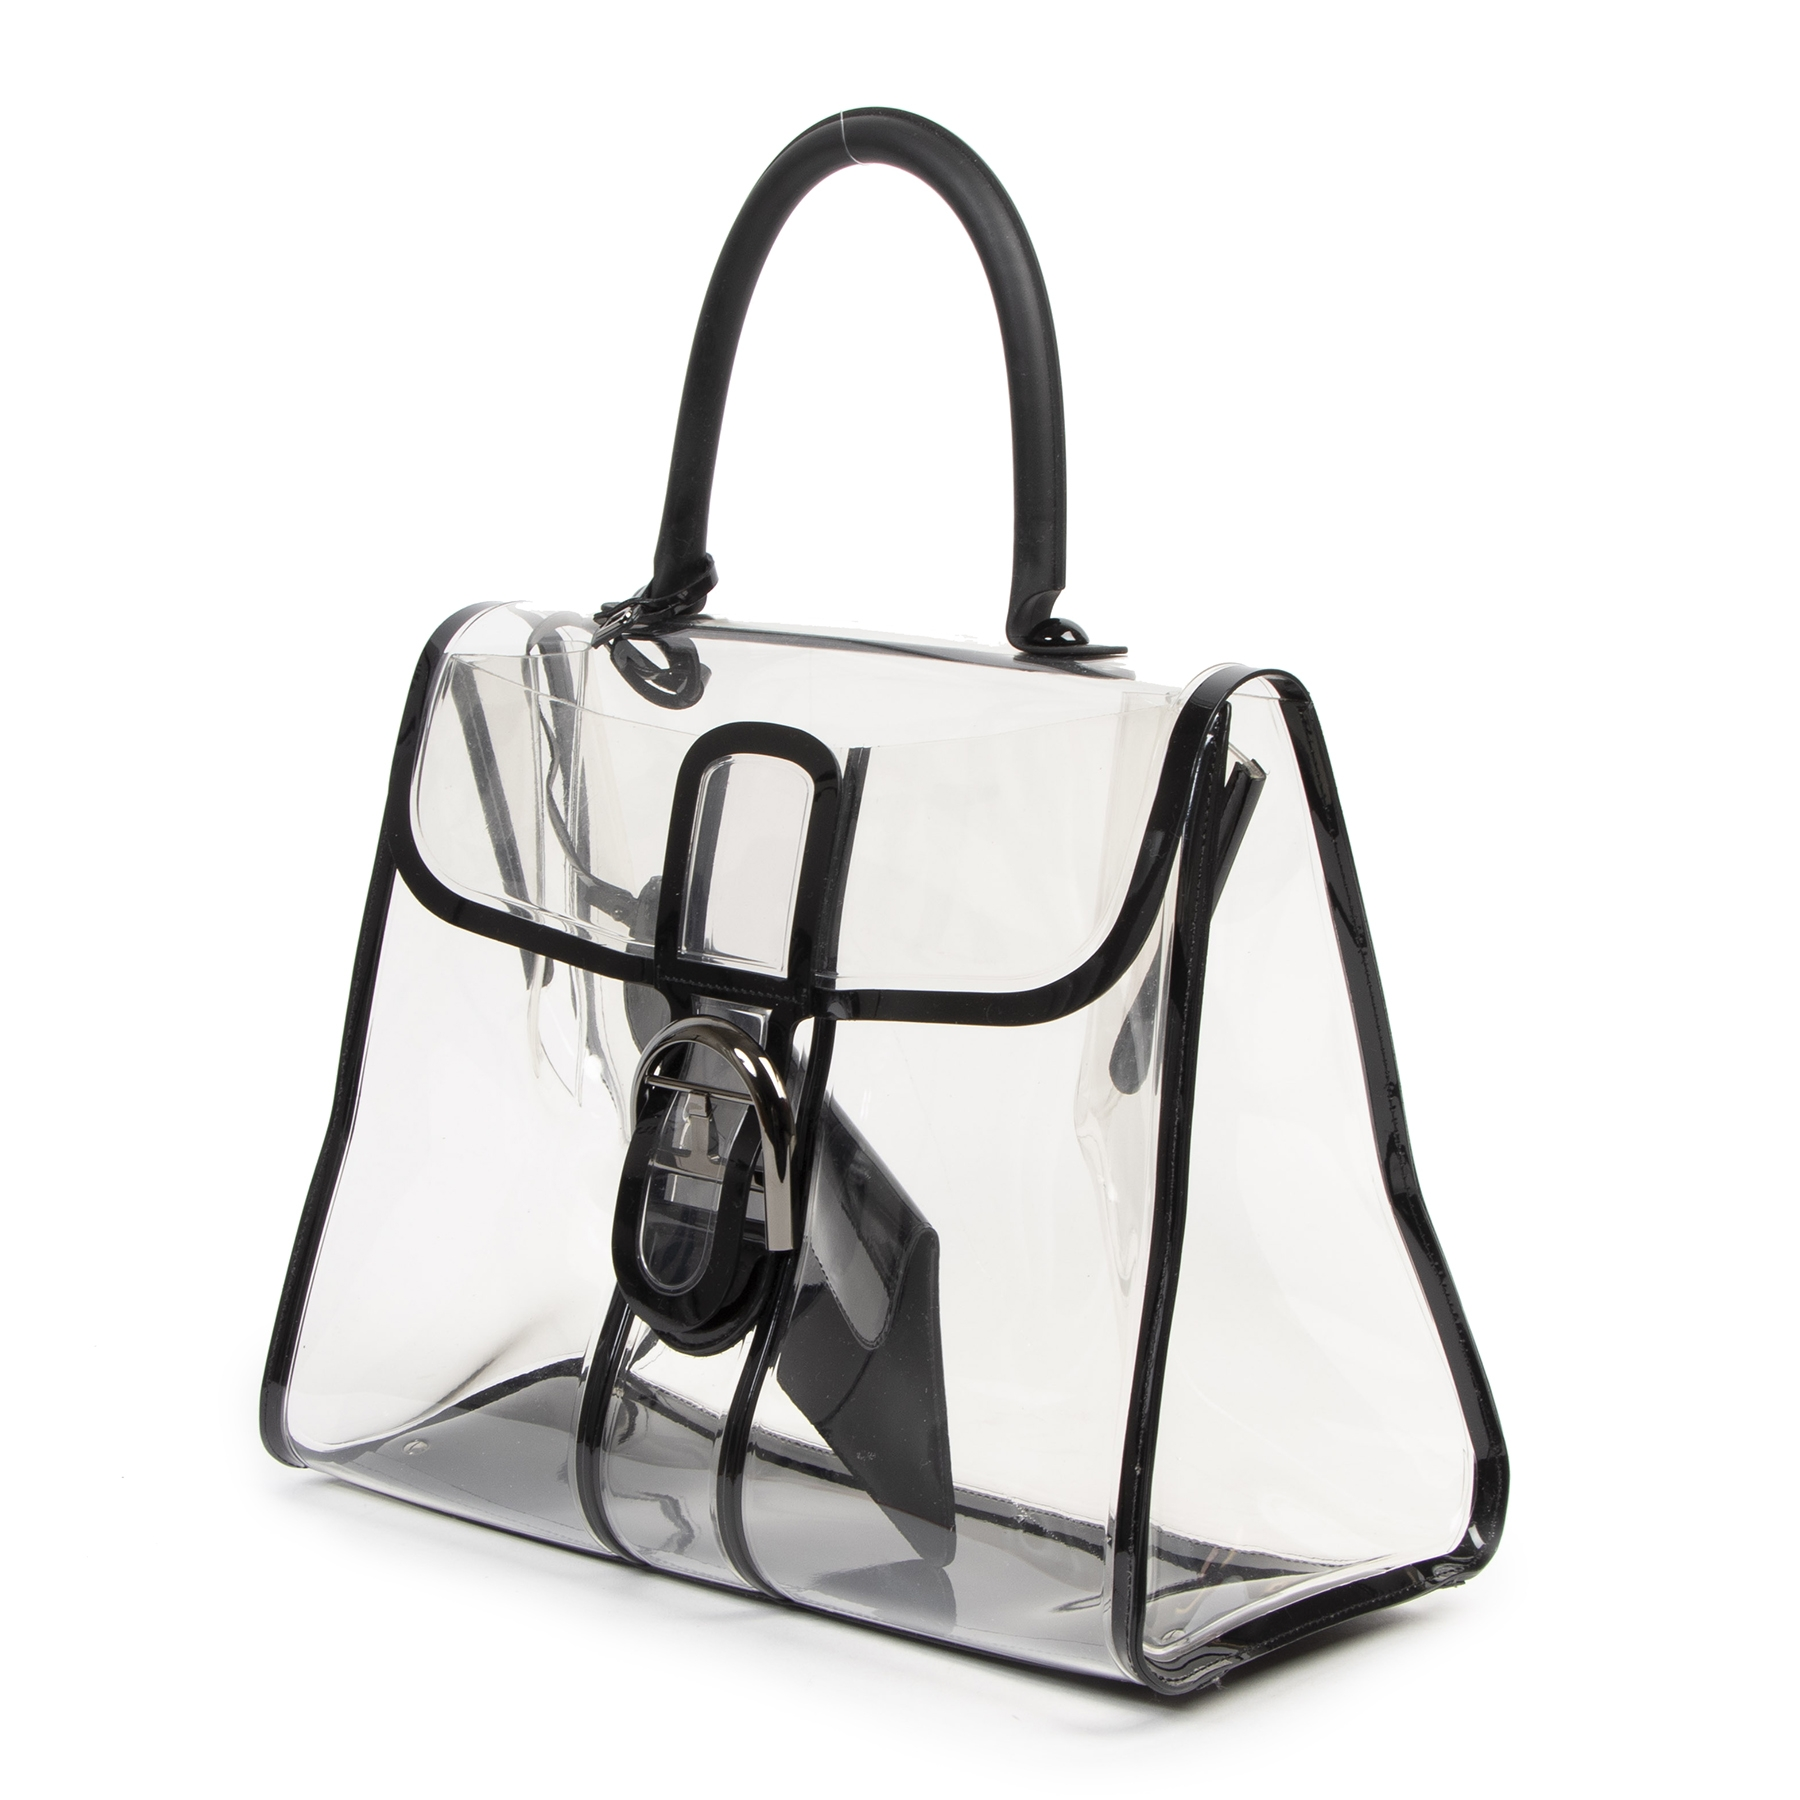 Authentic secondhand Delvaux Brillant X-Ray Limited Edition designer bags fashion luxury vintage webshop safe secure online shopping